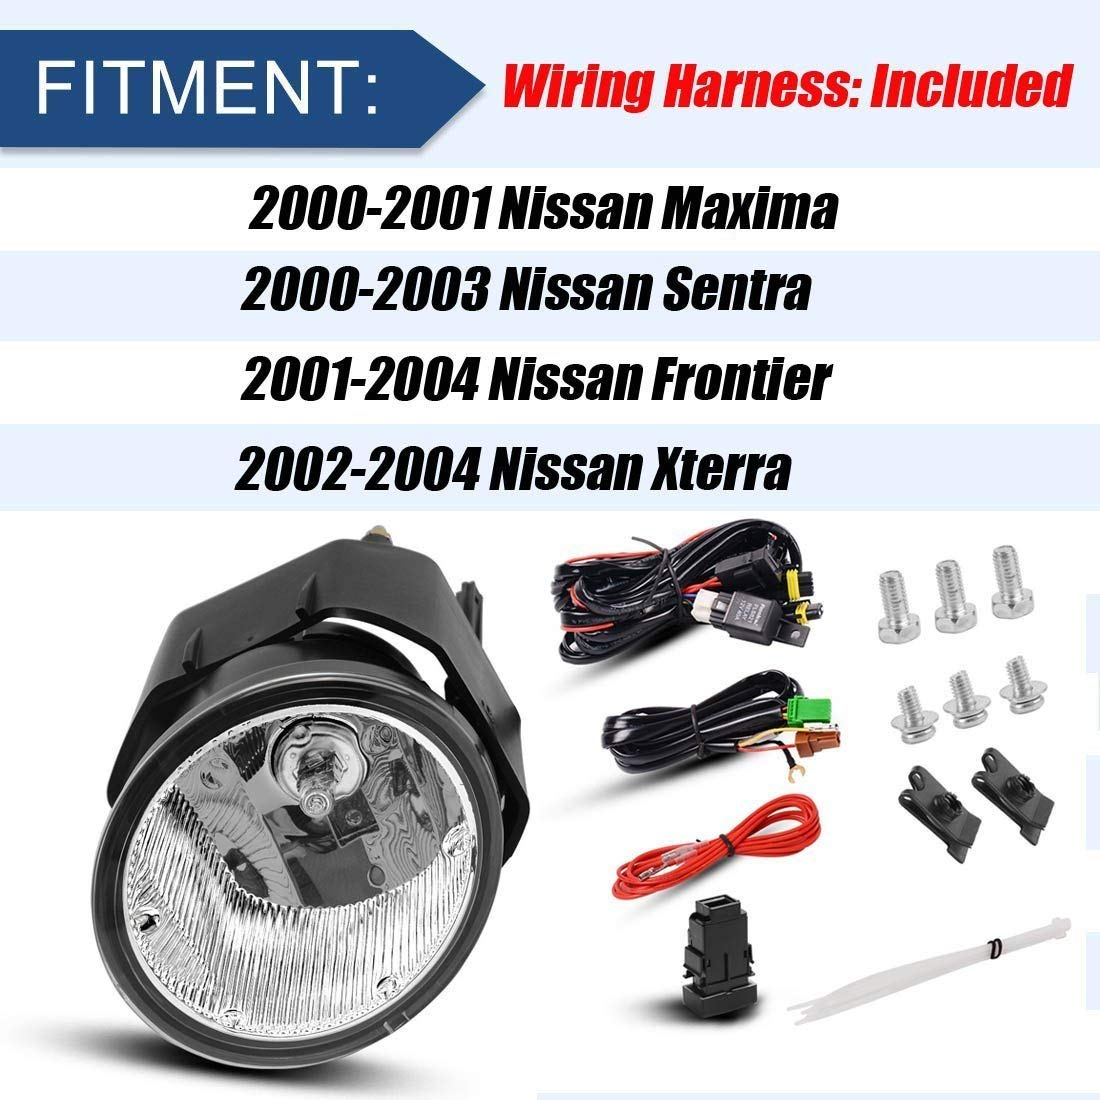 hight resolution of fog lights h3 12v 55w halogen lamp for nissan sentra 2000 2003 frontier 2001 2004 xterra 2002 2004 maxima 2000 2001 clear lens w bulbs wiring harness